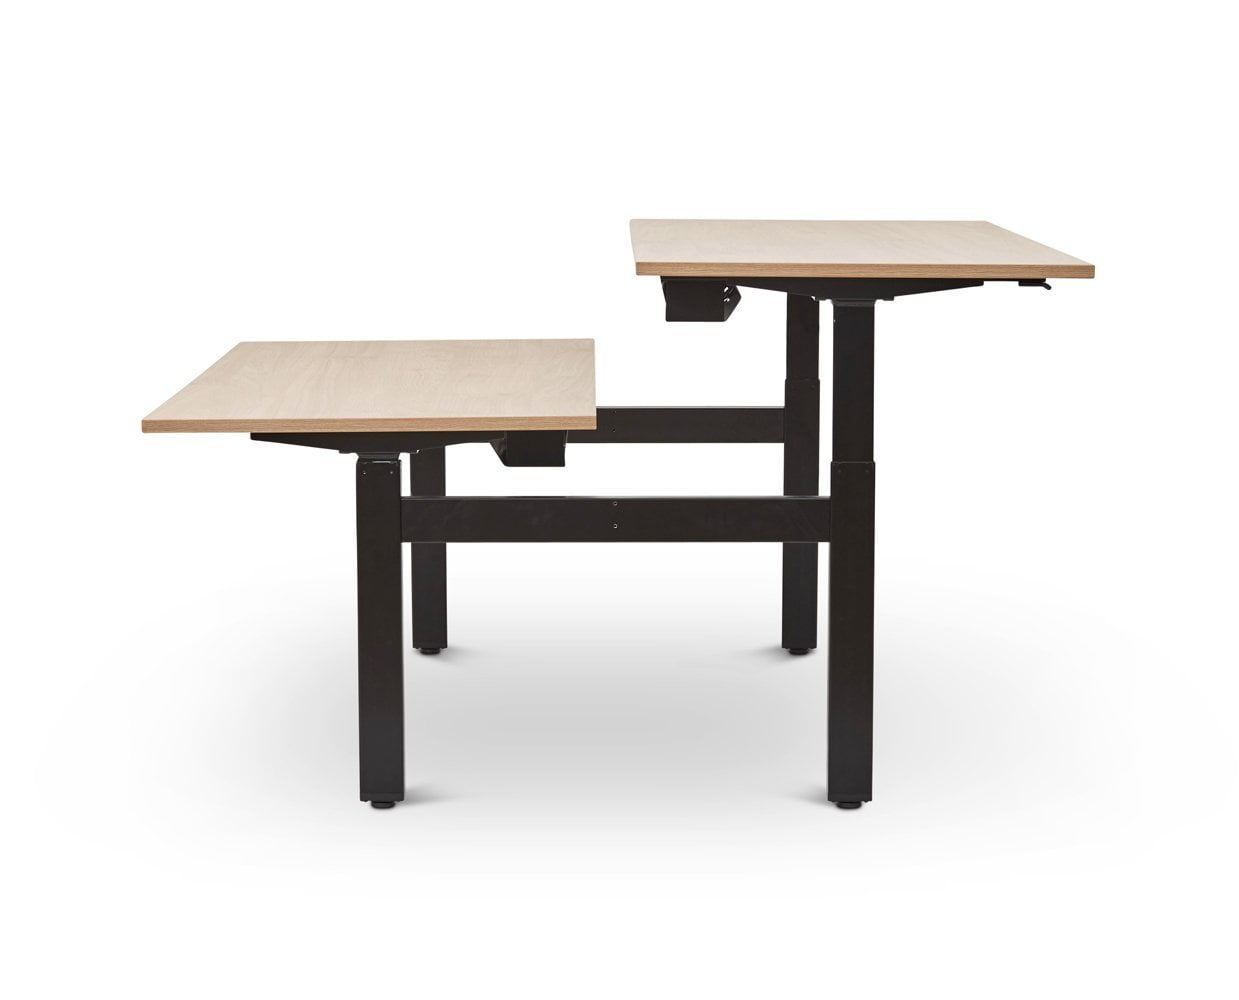 Jensen Double Sit Stand Desk - Scandinavian Designs